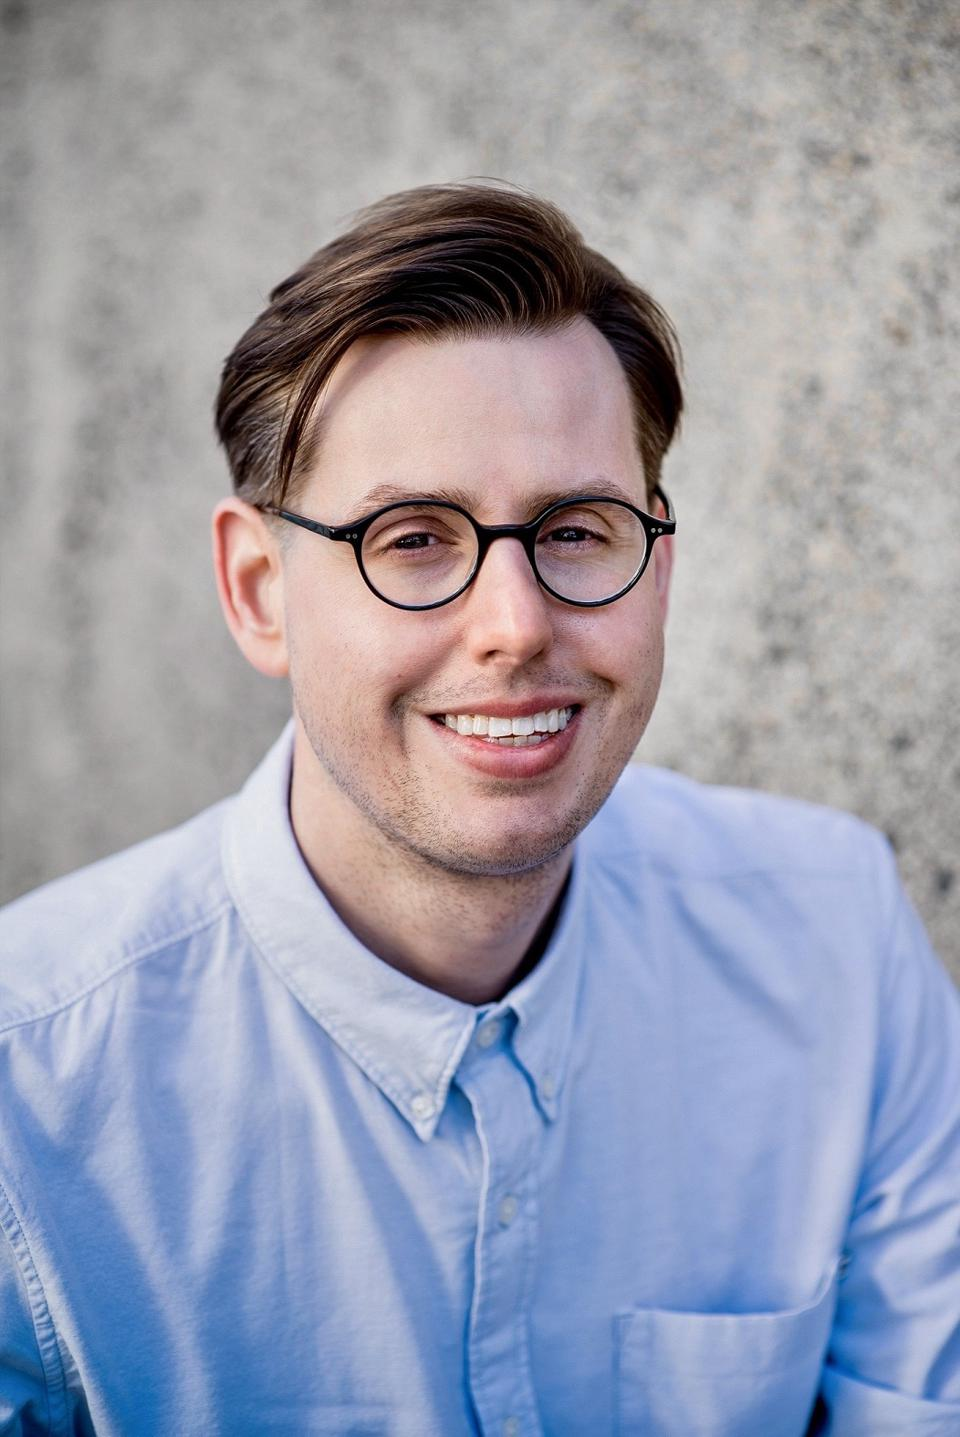 Dusty Dean, founder and CEO of BITCADET and Senior Board Advisor for VersaTube.